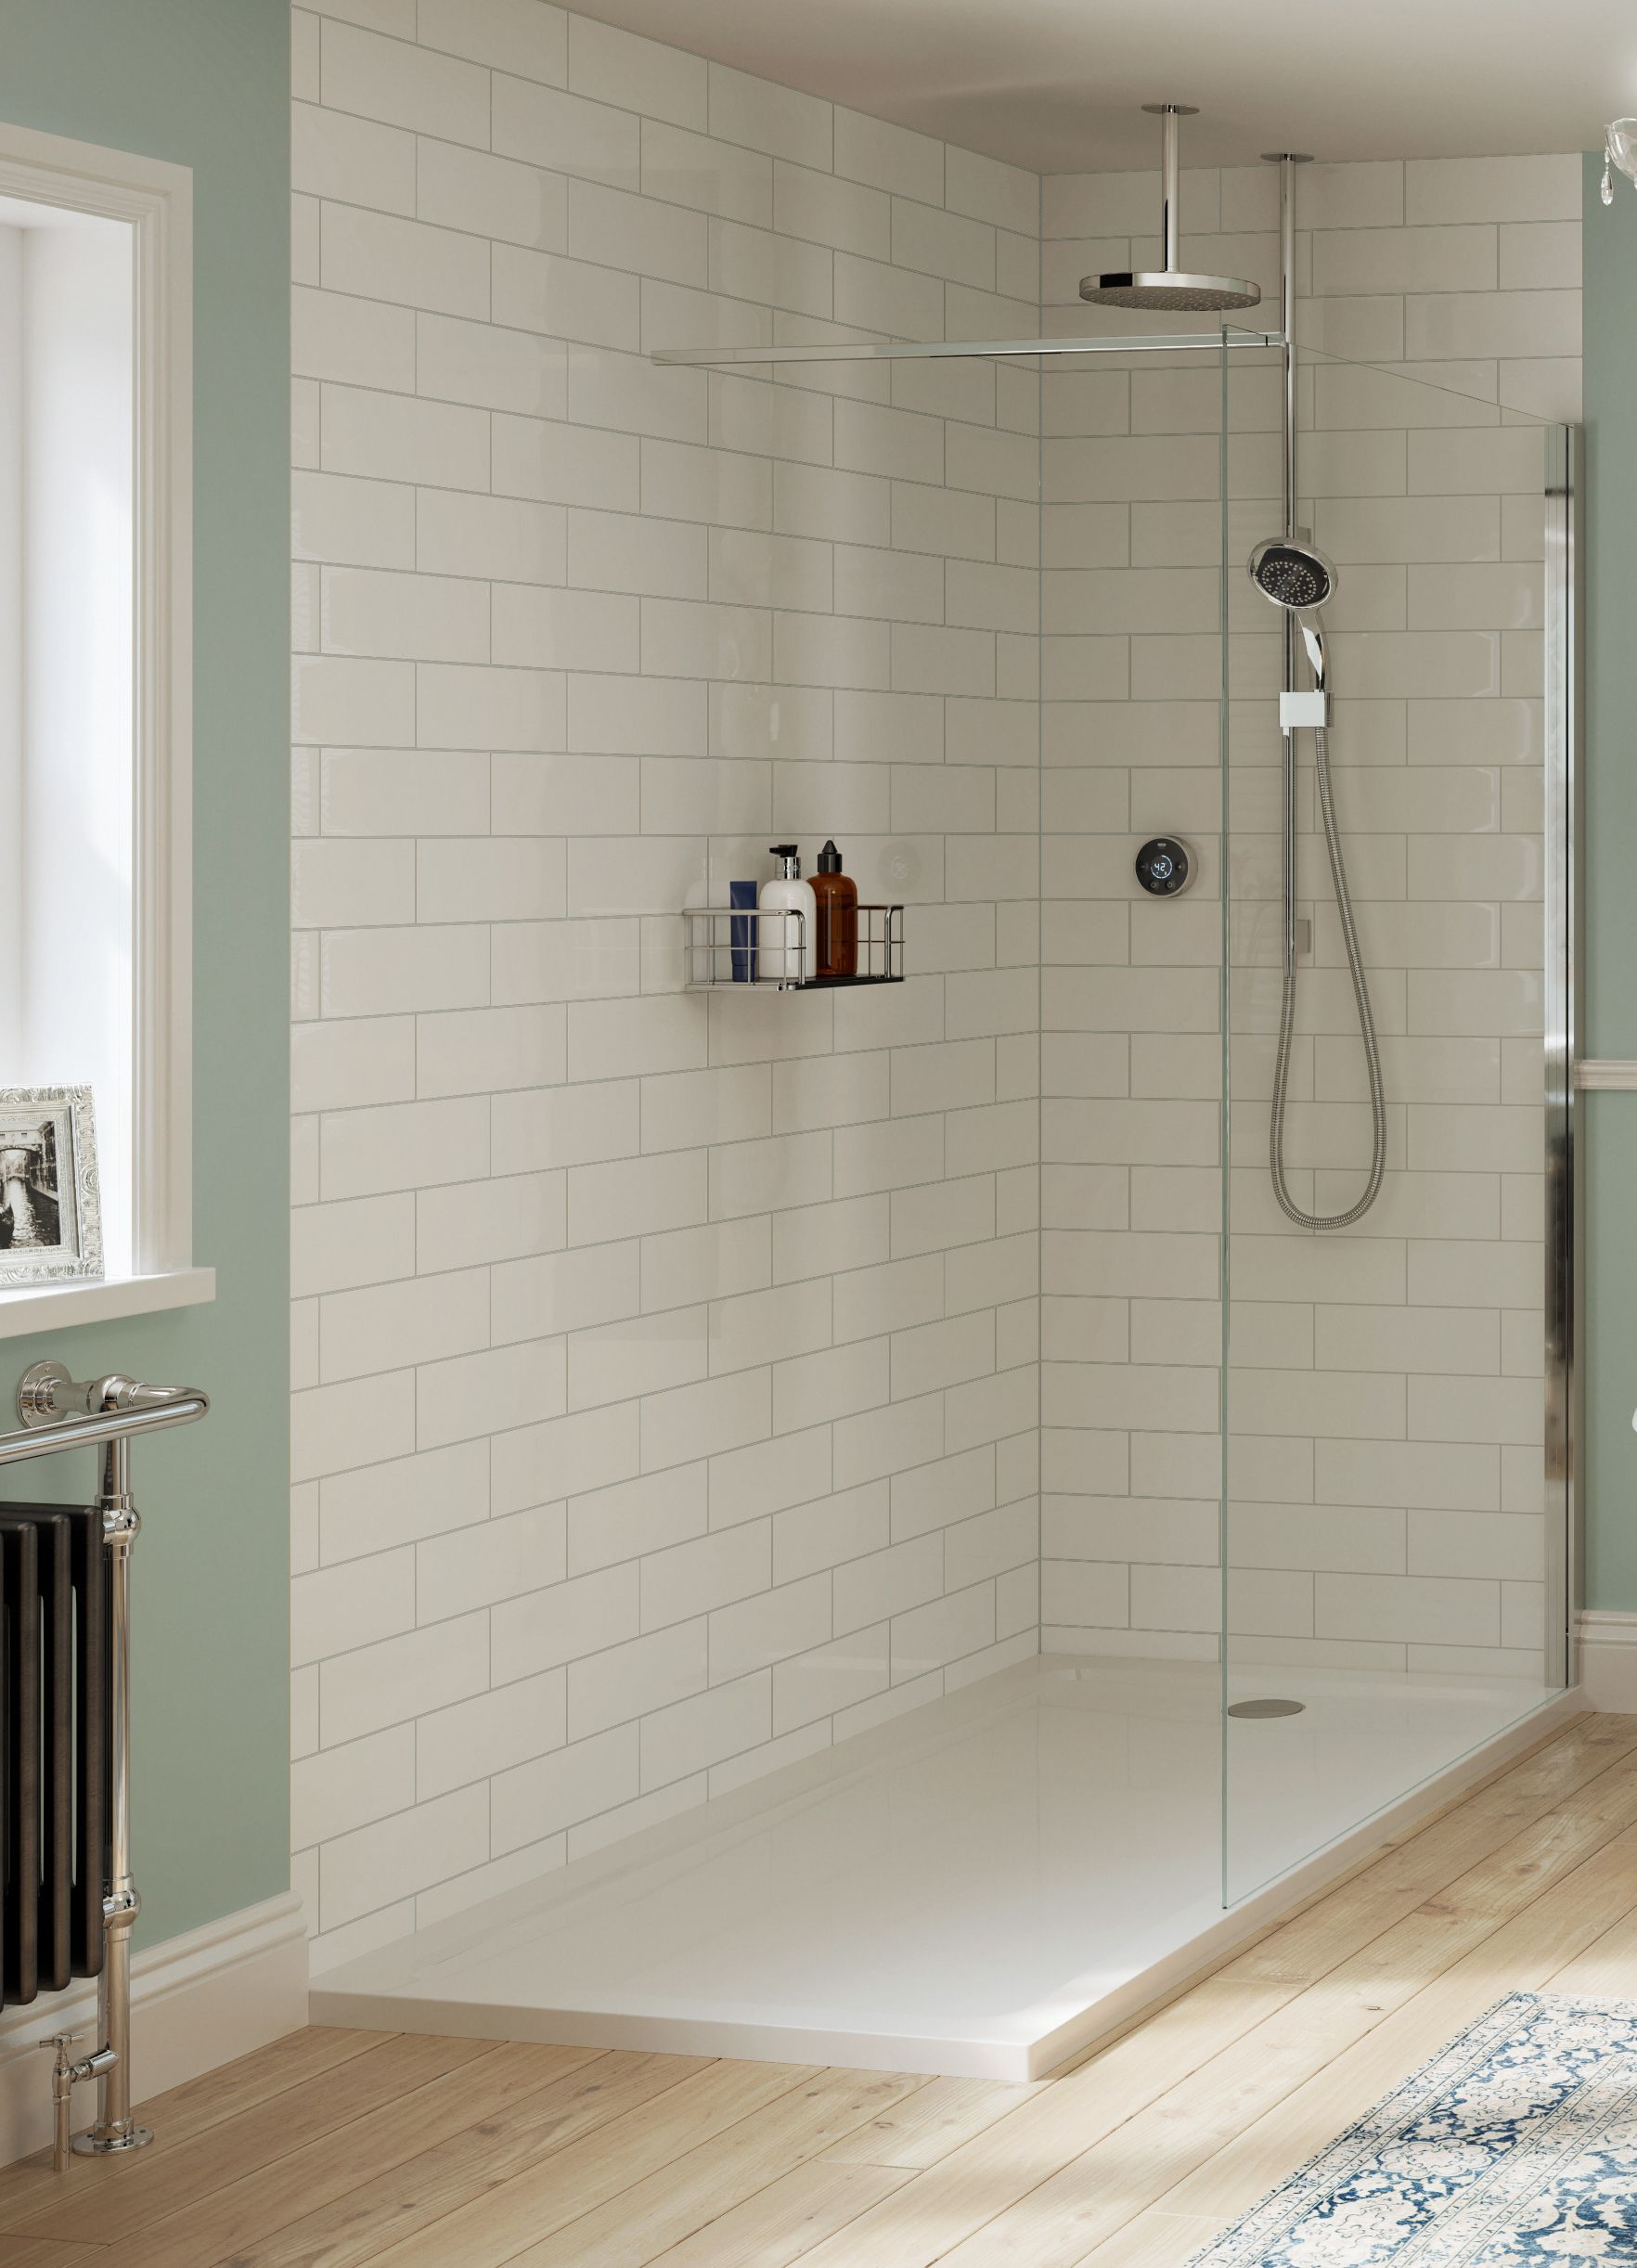 4 Expert Bathroom Budgeting Tips From Mira Showers Bathroom